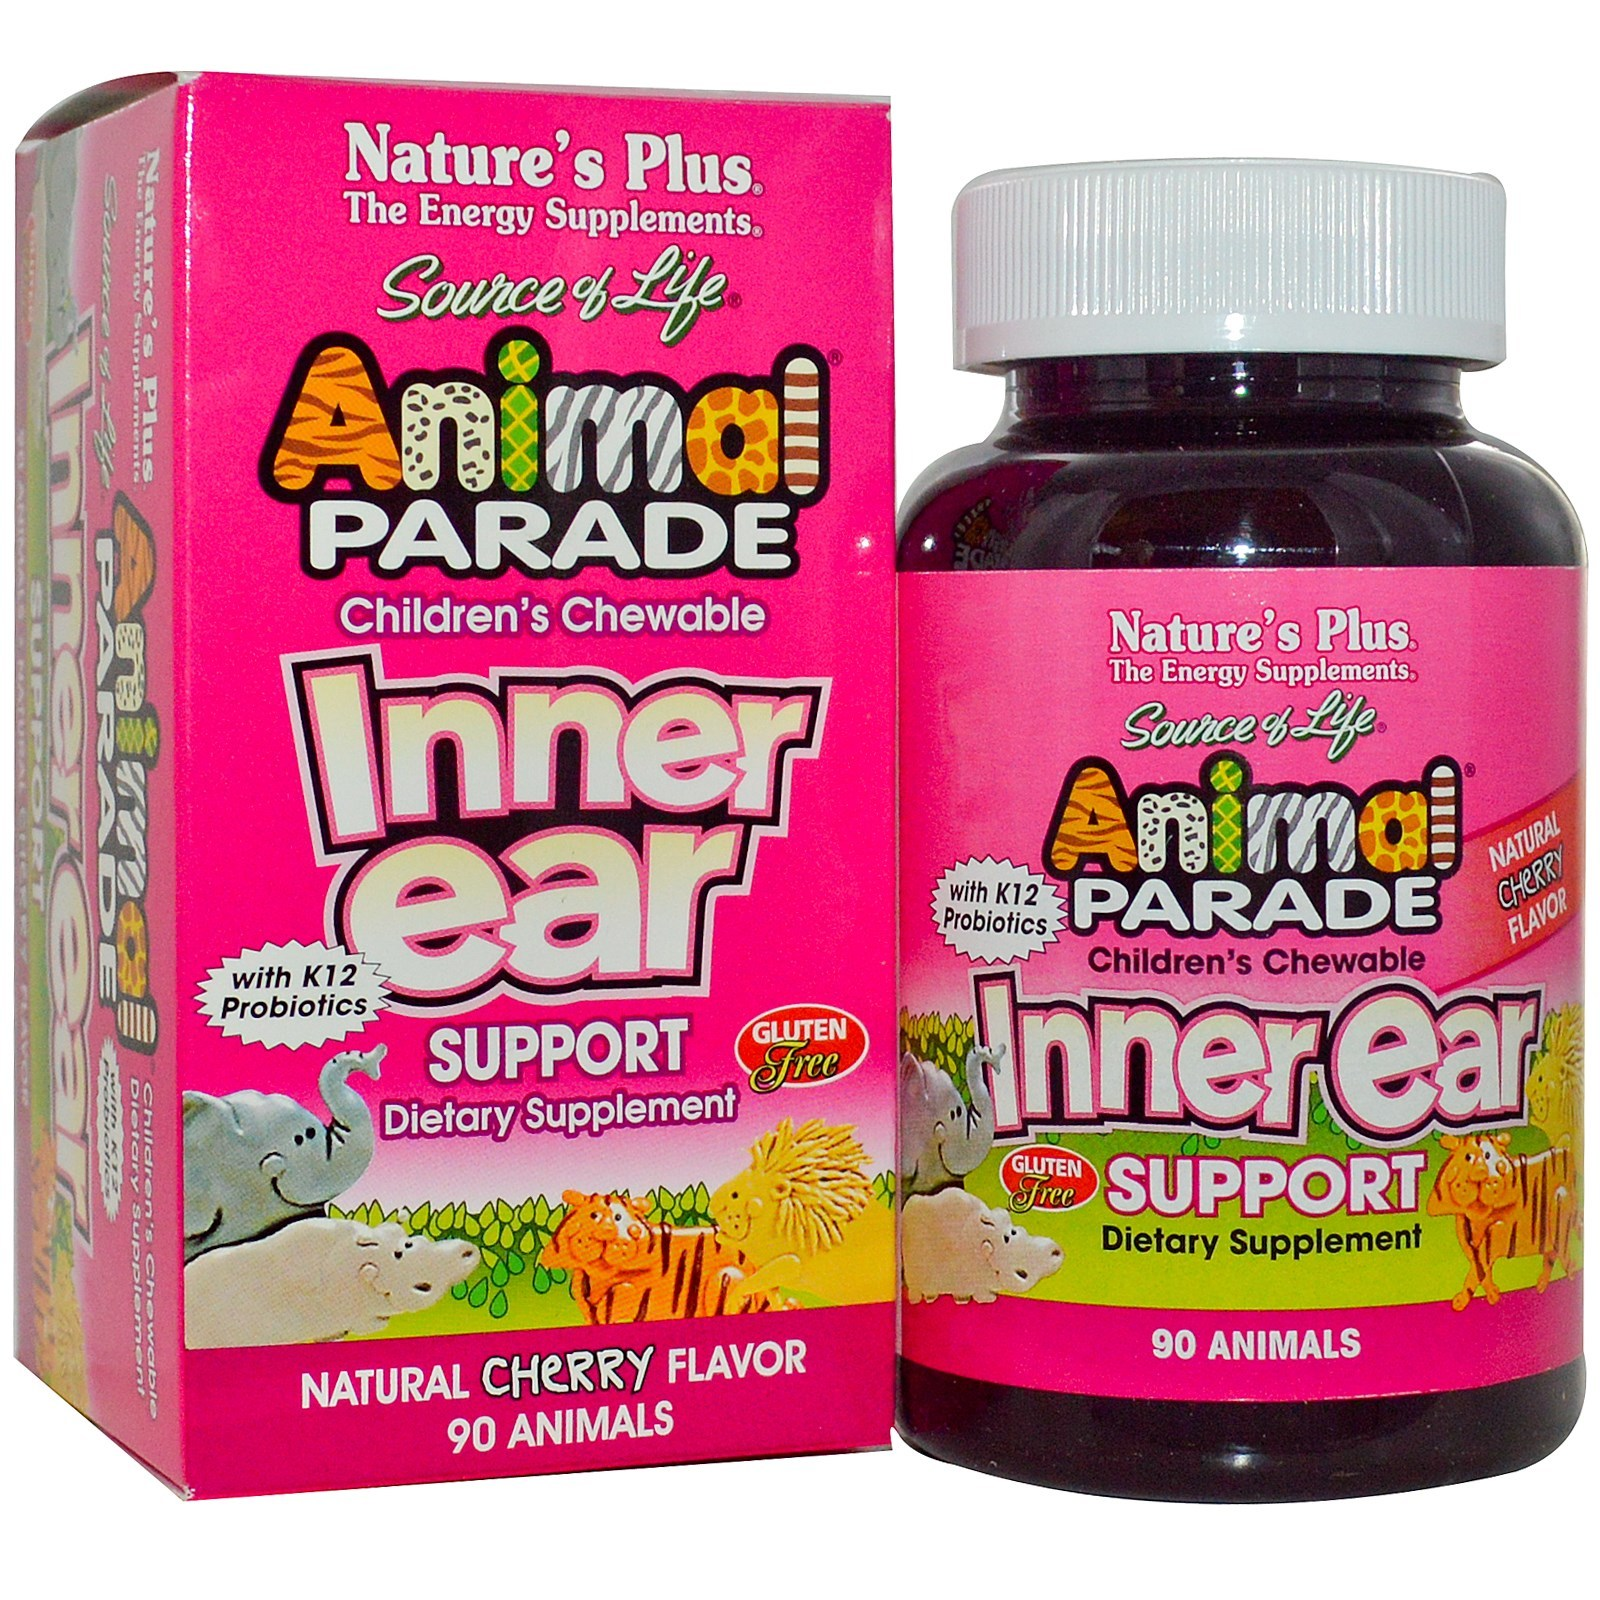 Natures Plus Source Of Life Animal Parade Inner Ear Support Tabs 90 Calcium